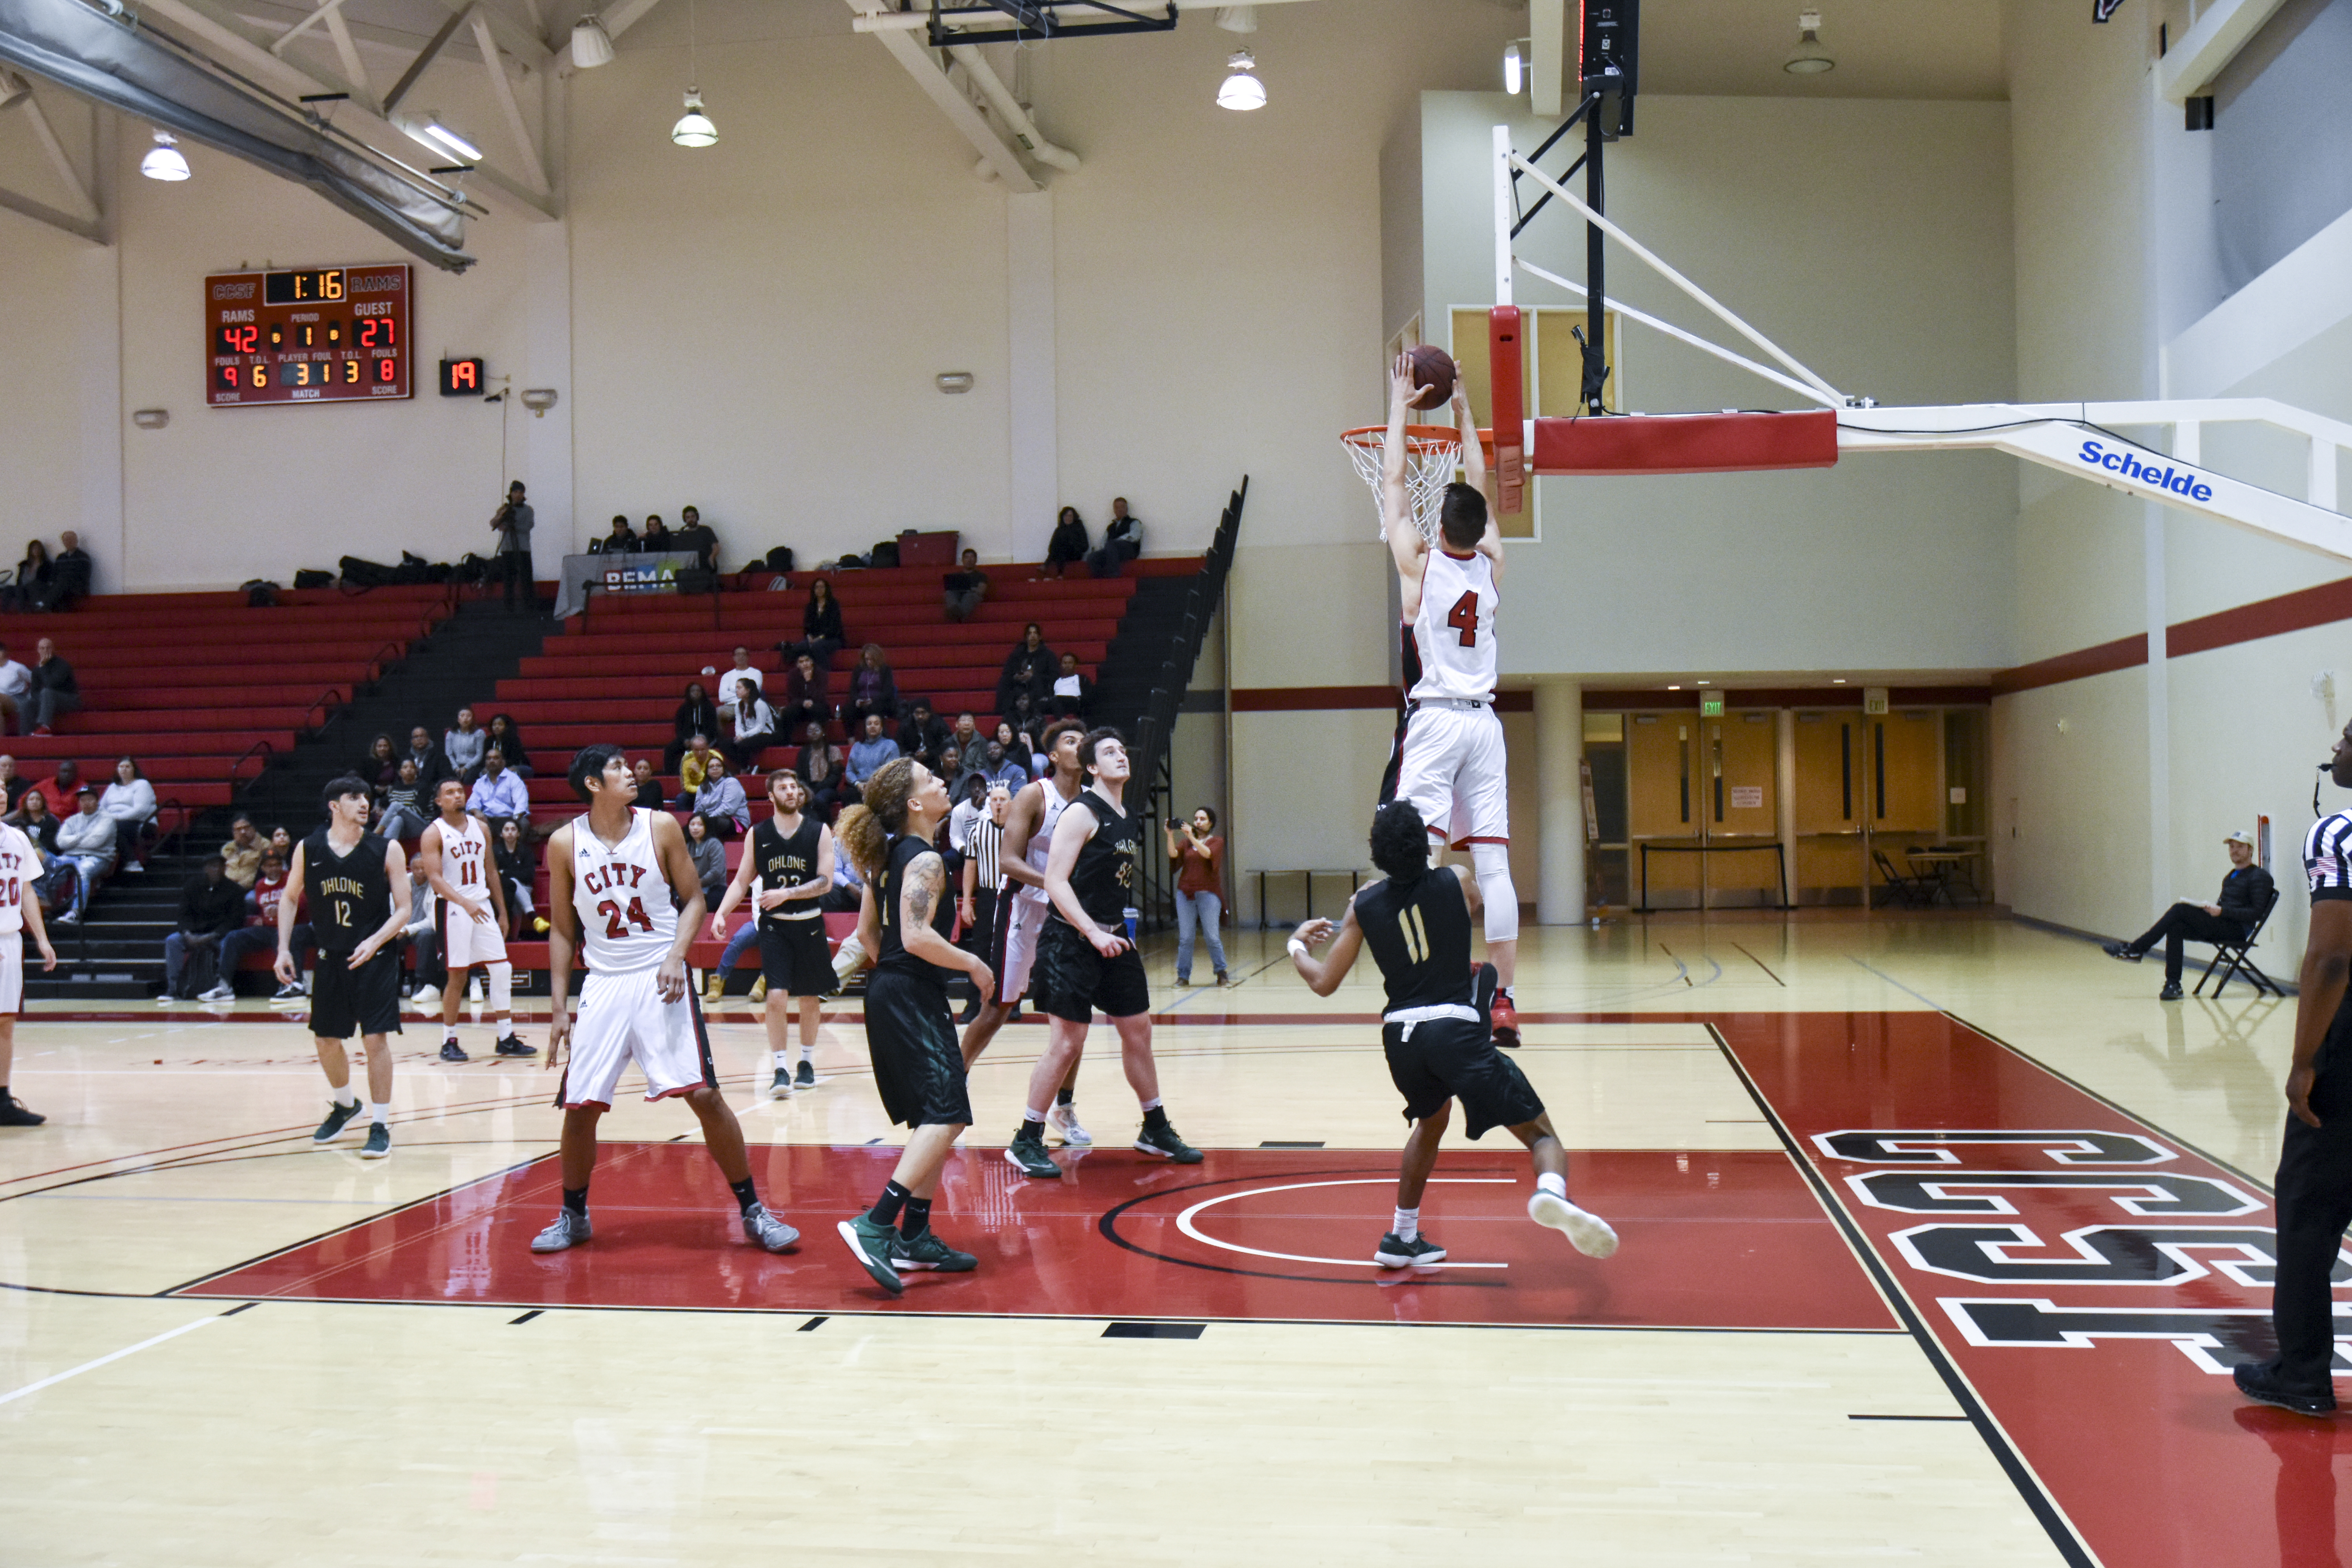 City College Ram's sophomore guard Eddy Ionescu (#4) receives lob pass from sophomore guard Eddie Stansberry (#11) for the two-hand jam against Ohlone College on Feb. 16, 2018. Photo by Michael Menaster/special to The Guardsman.